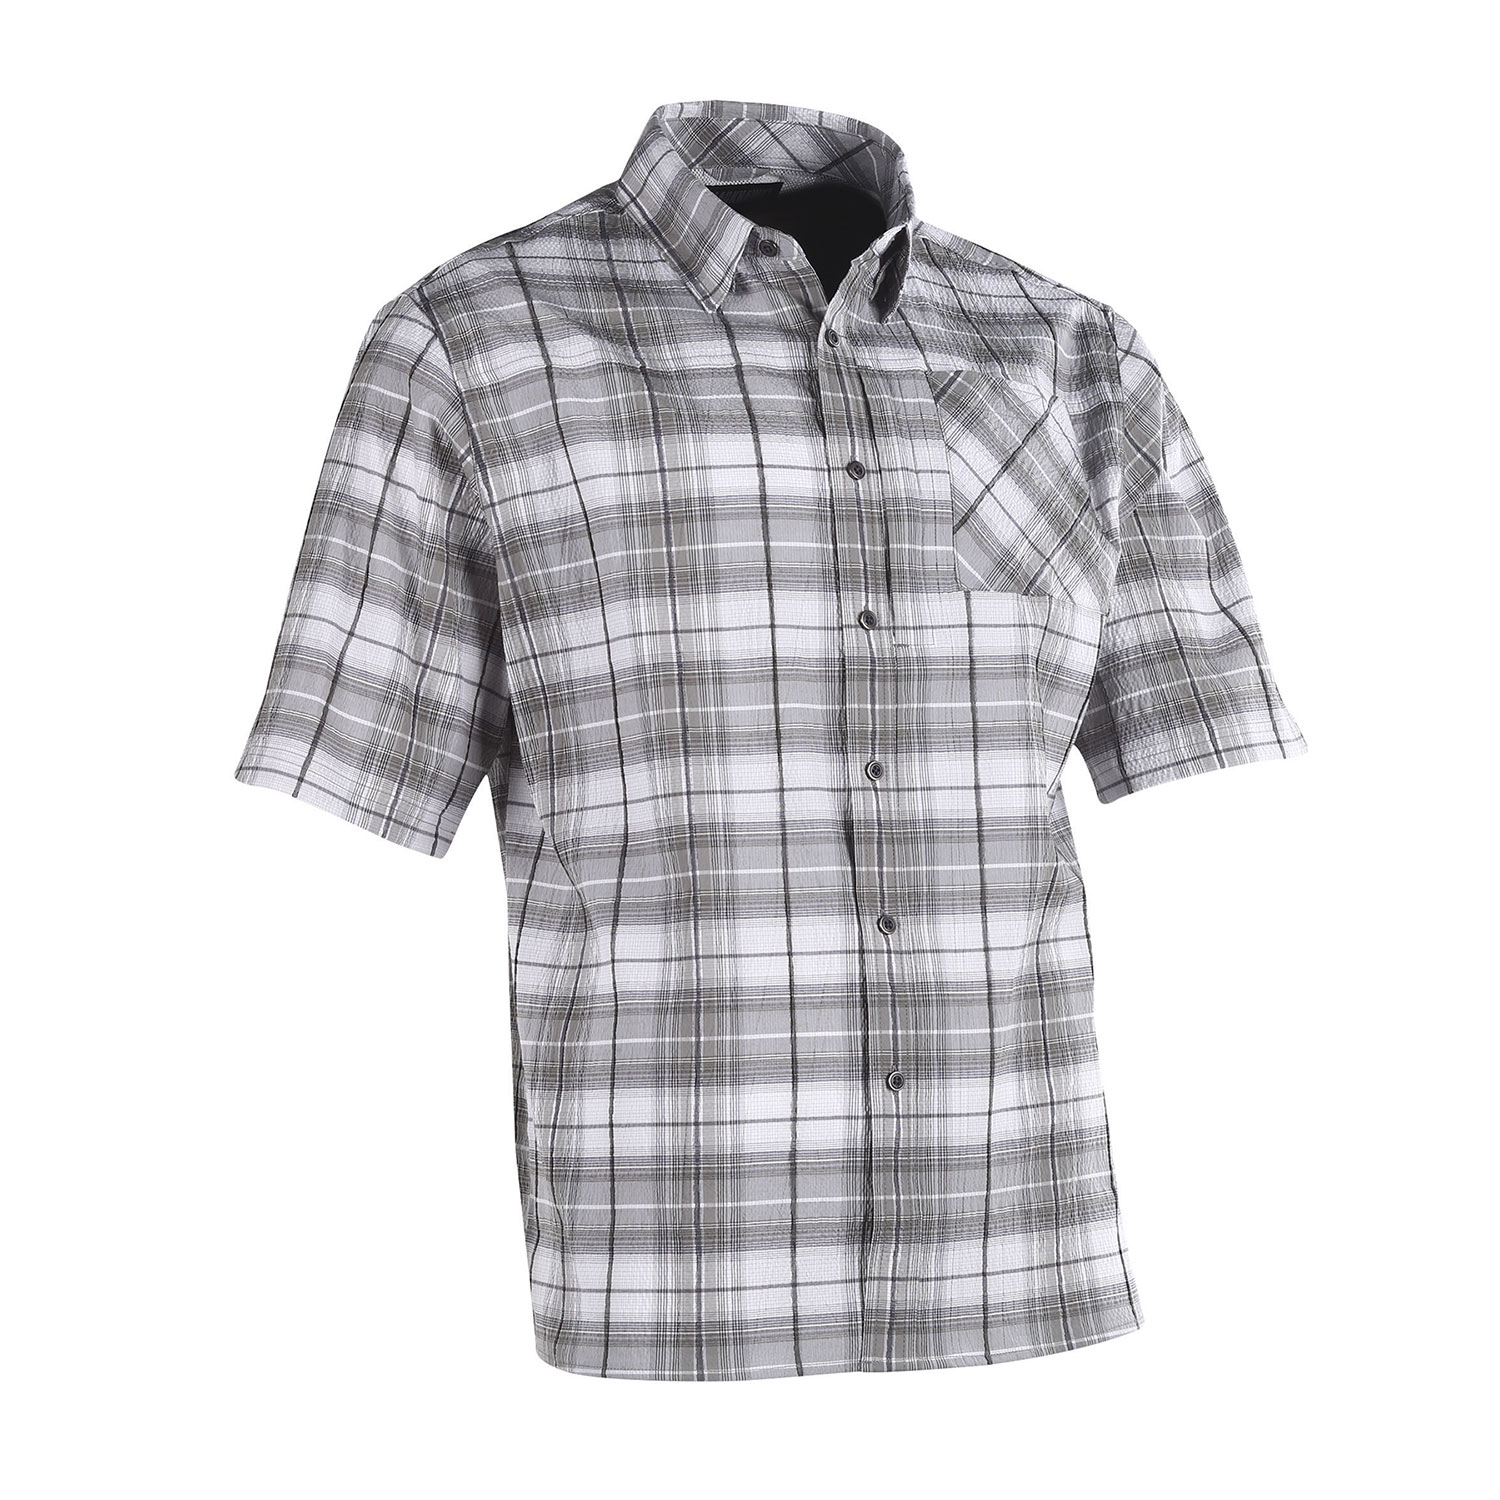 BLACKHAWK! 1700 Short Sleeve Shirt